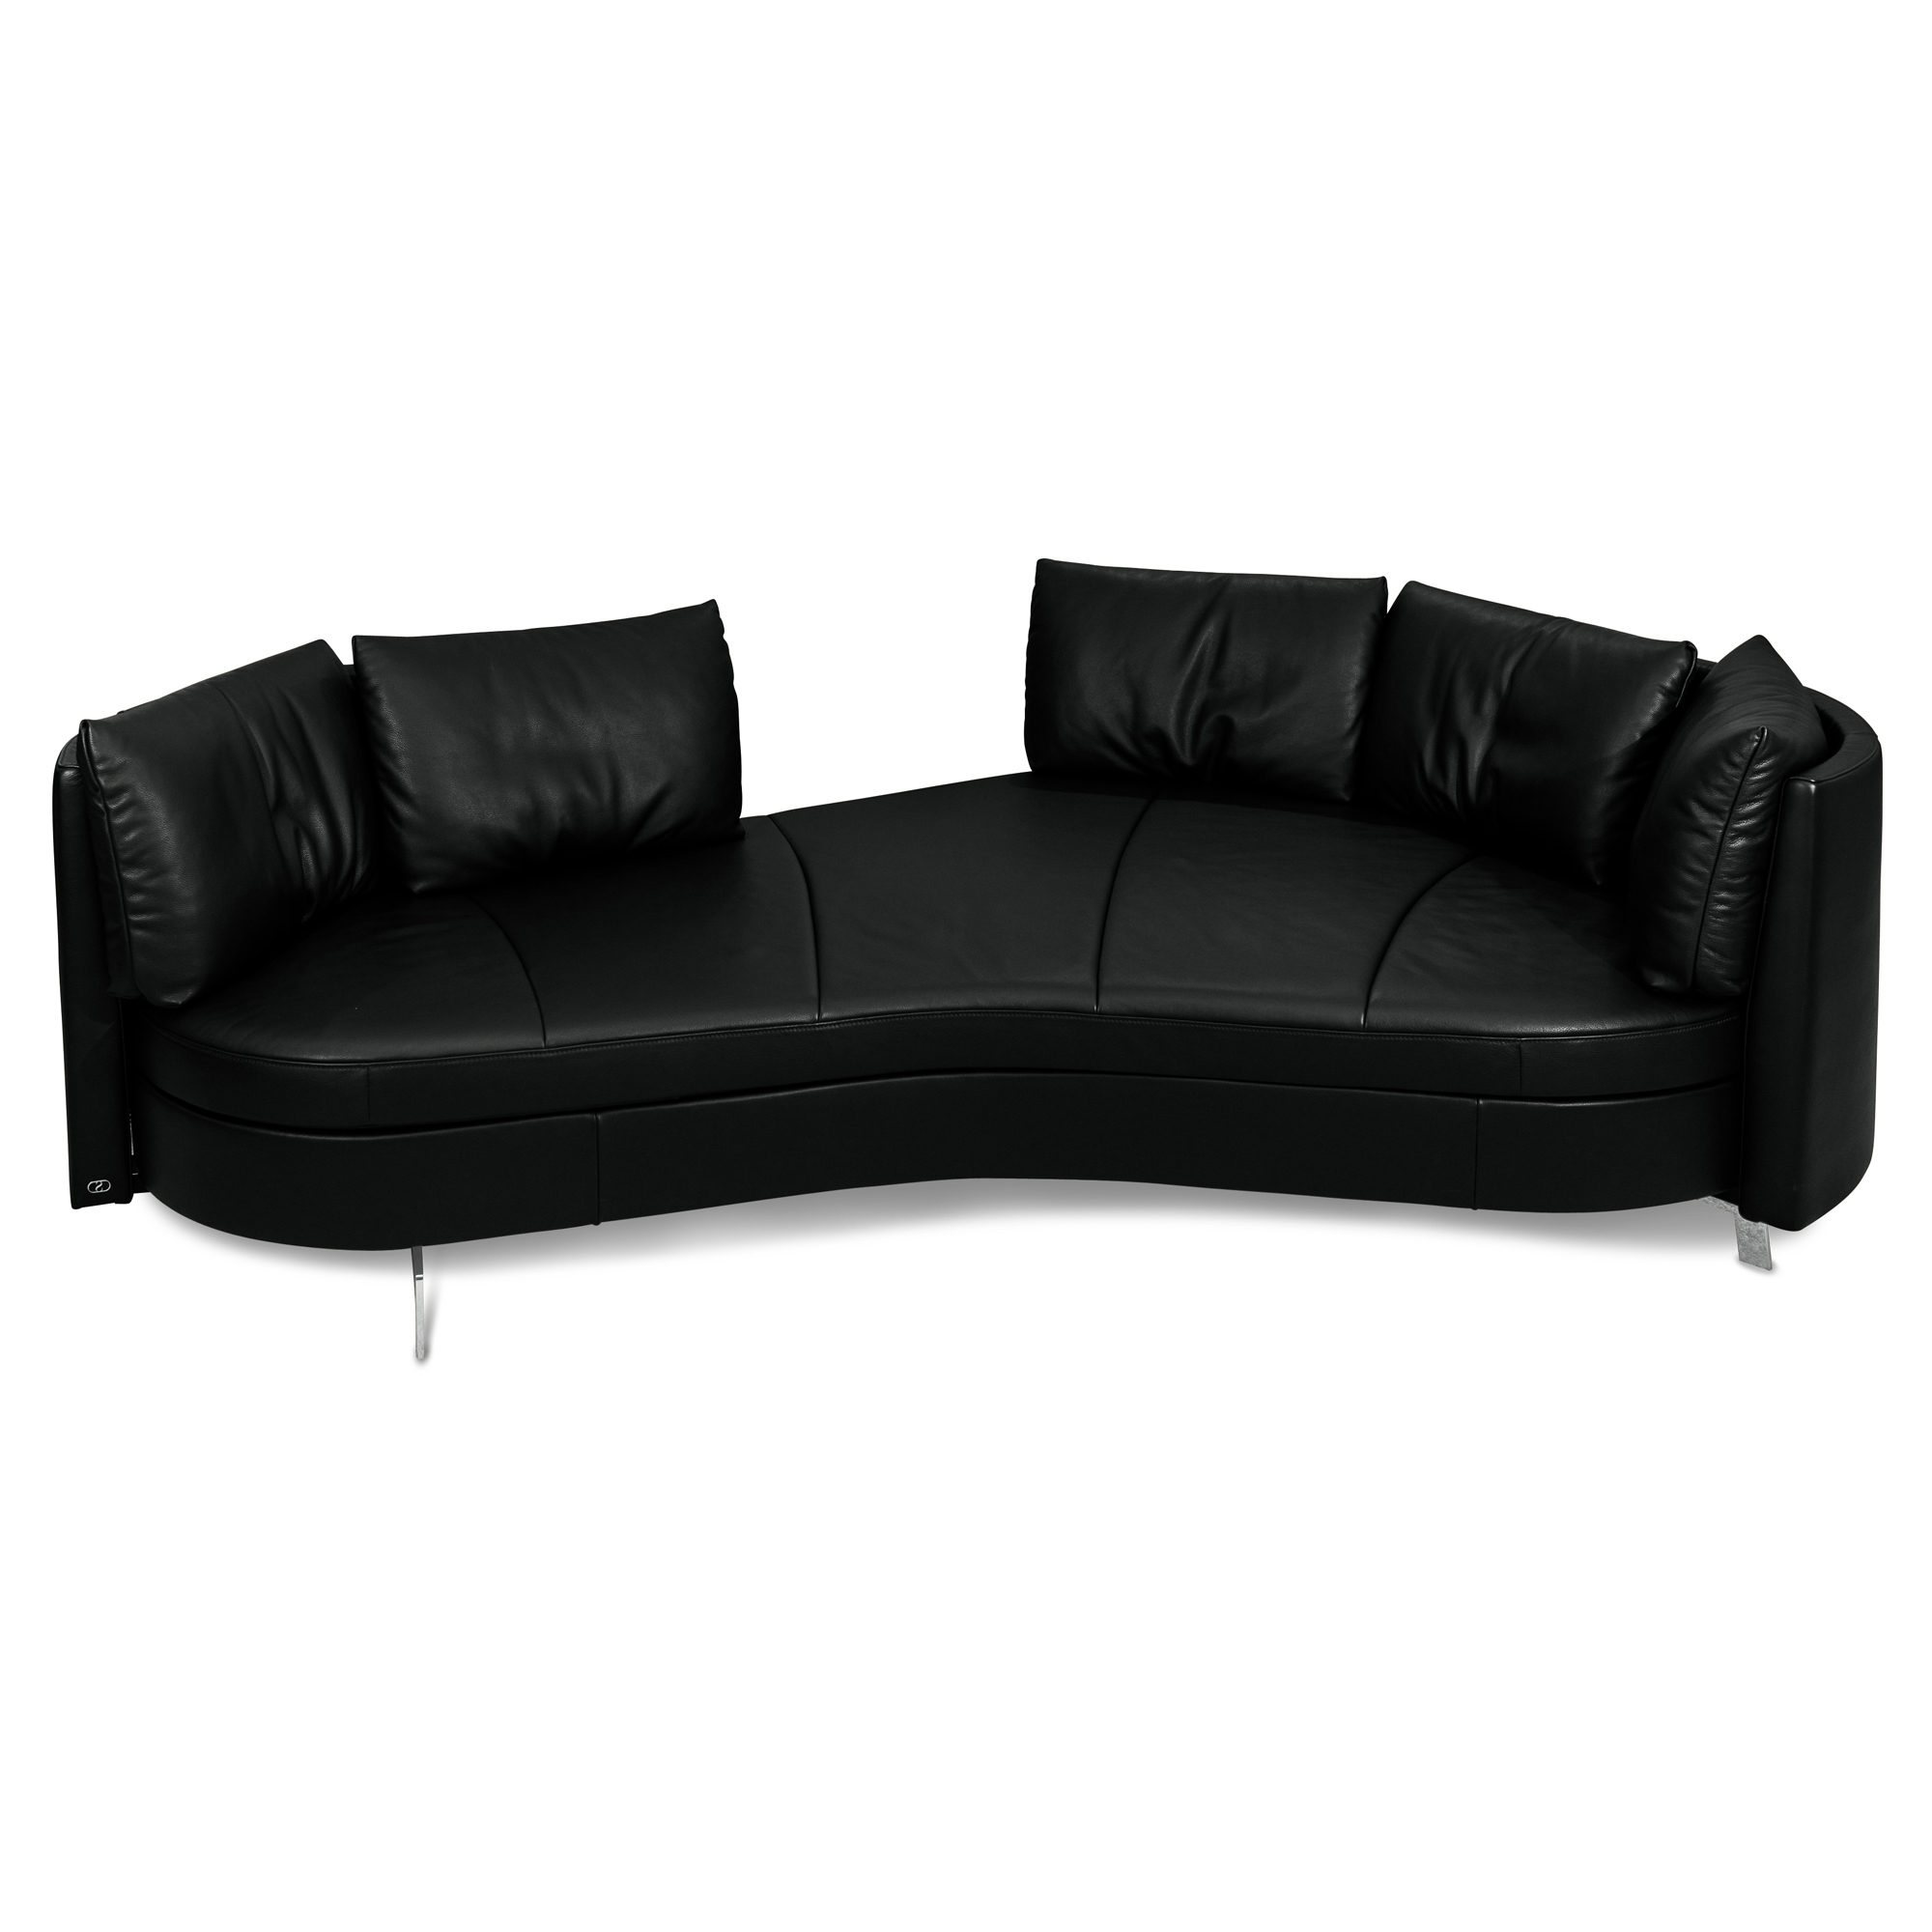 sofa ds 167 leder schwarz living asymmetrisch rechts de sede sofas g nstig kaufen m belfirst. Black Bedroom Furniture Sets. Home Design Ideas